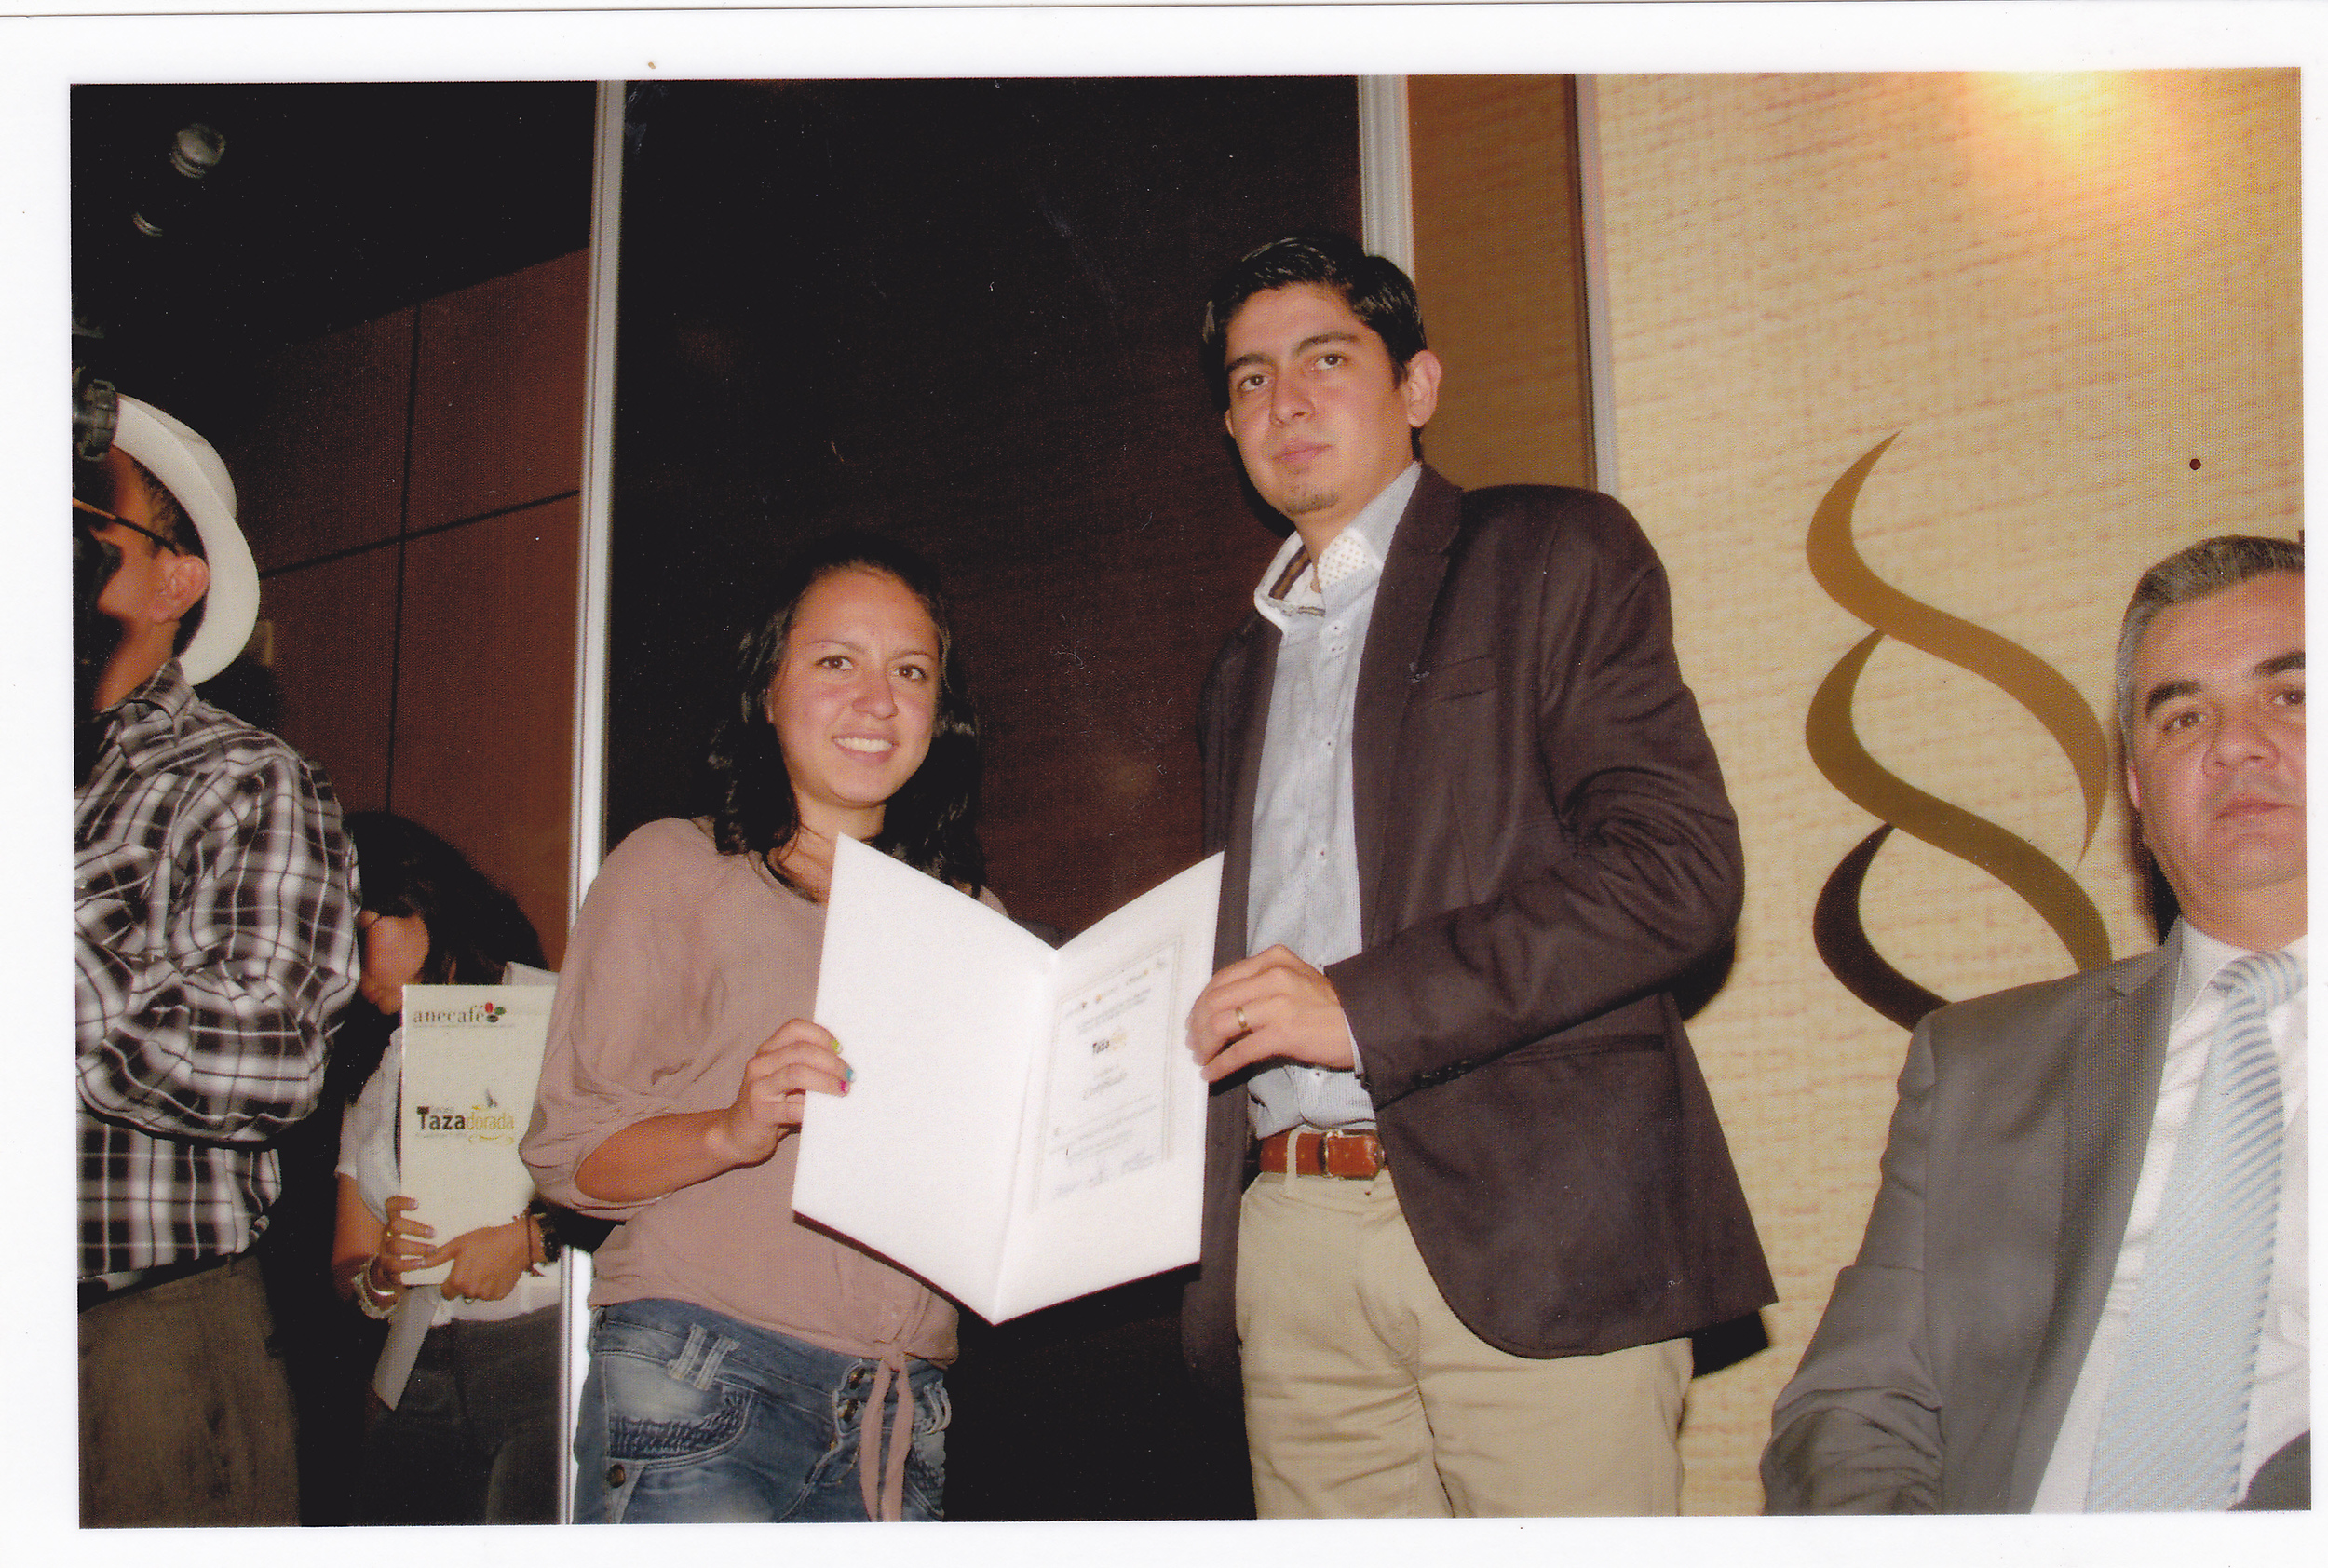 Angelino Abad's oldest daughter, Catherine, receiving ACOPOC's award in the 2013 Taza Dorada (Gold Cup) competition.